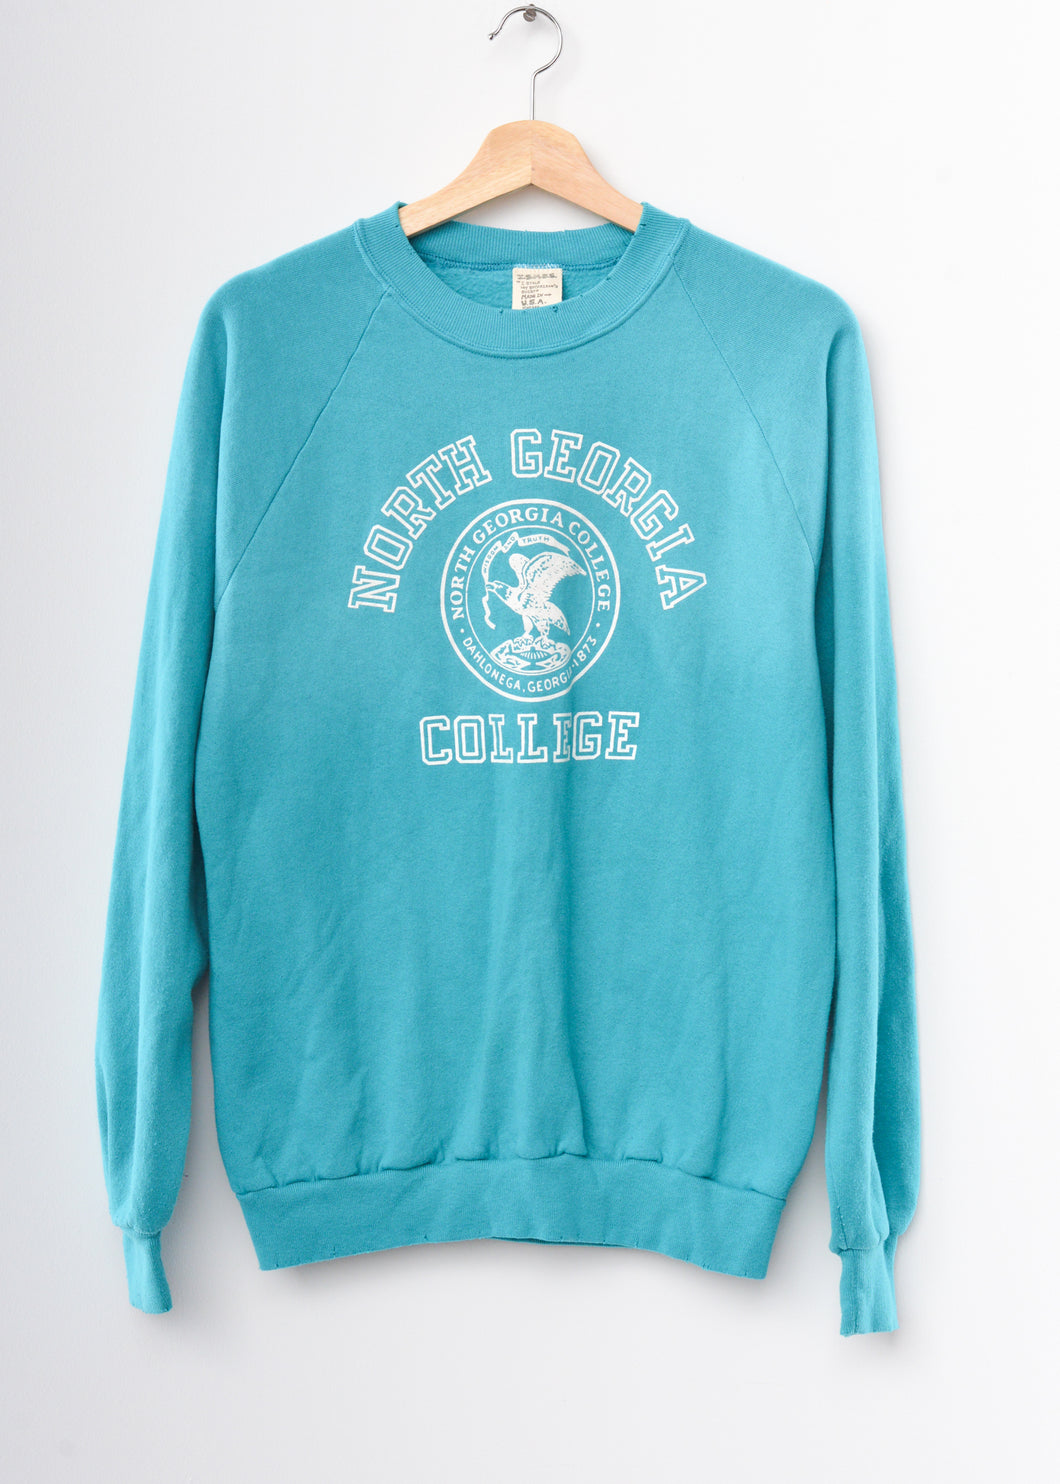 North Georgia College Sweatshirt